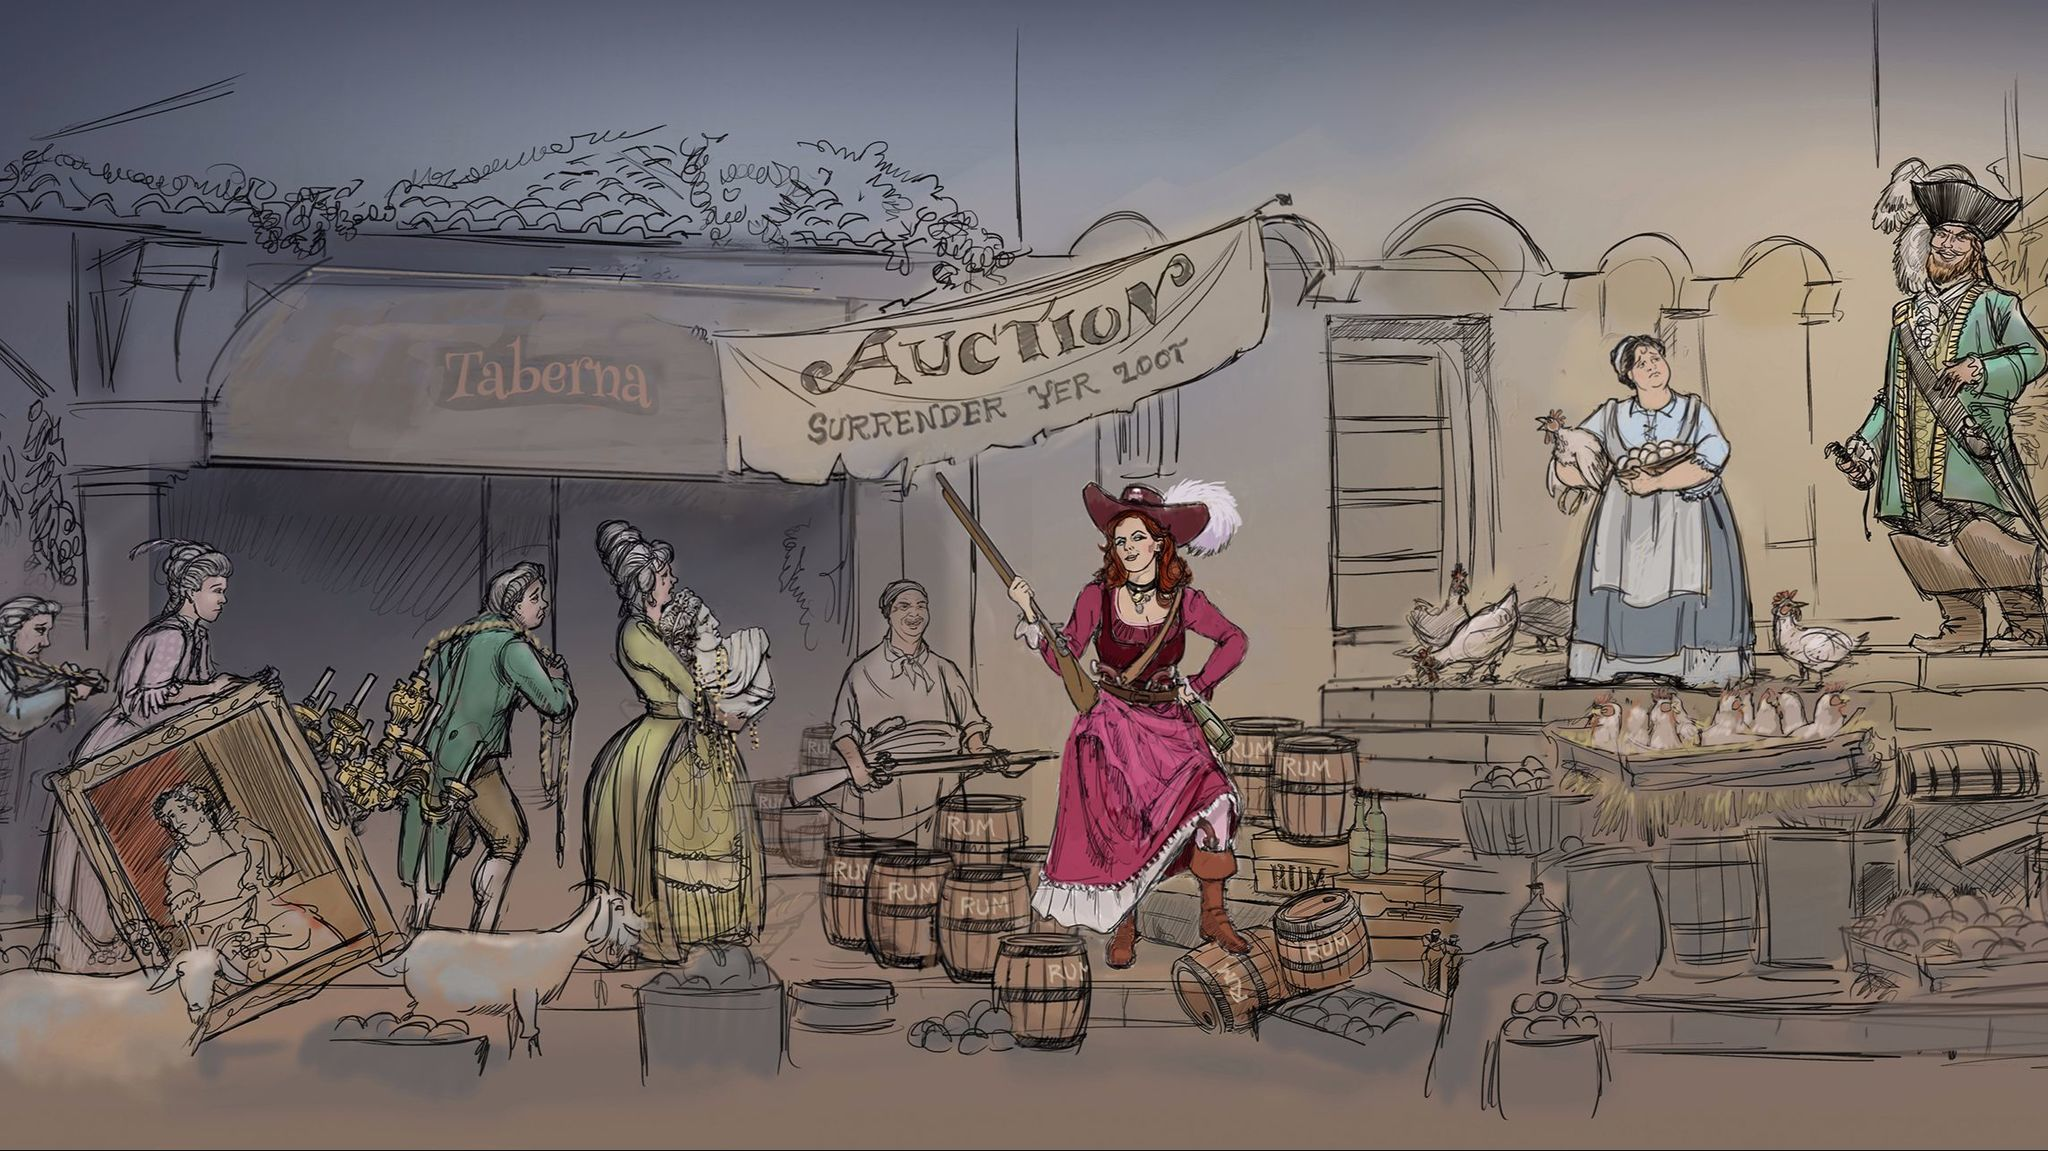 An artist's rendering of the scene that will replace the bride auction on Pirates of the Caribbean at Disneyland.